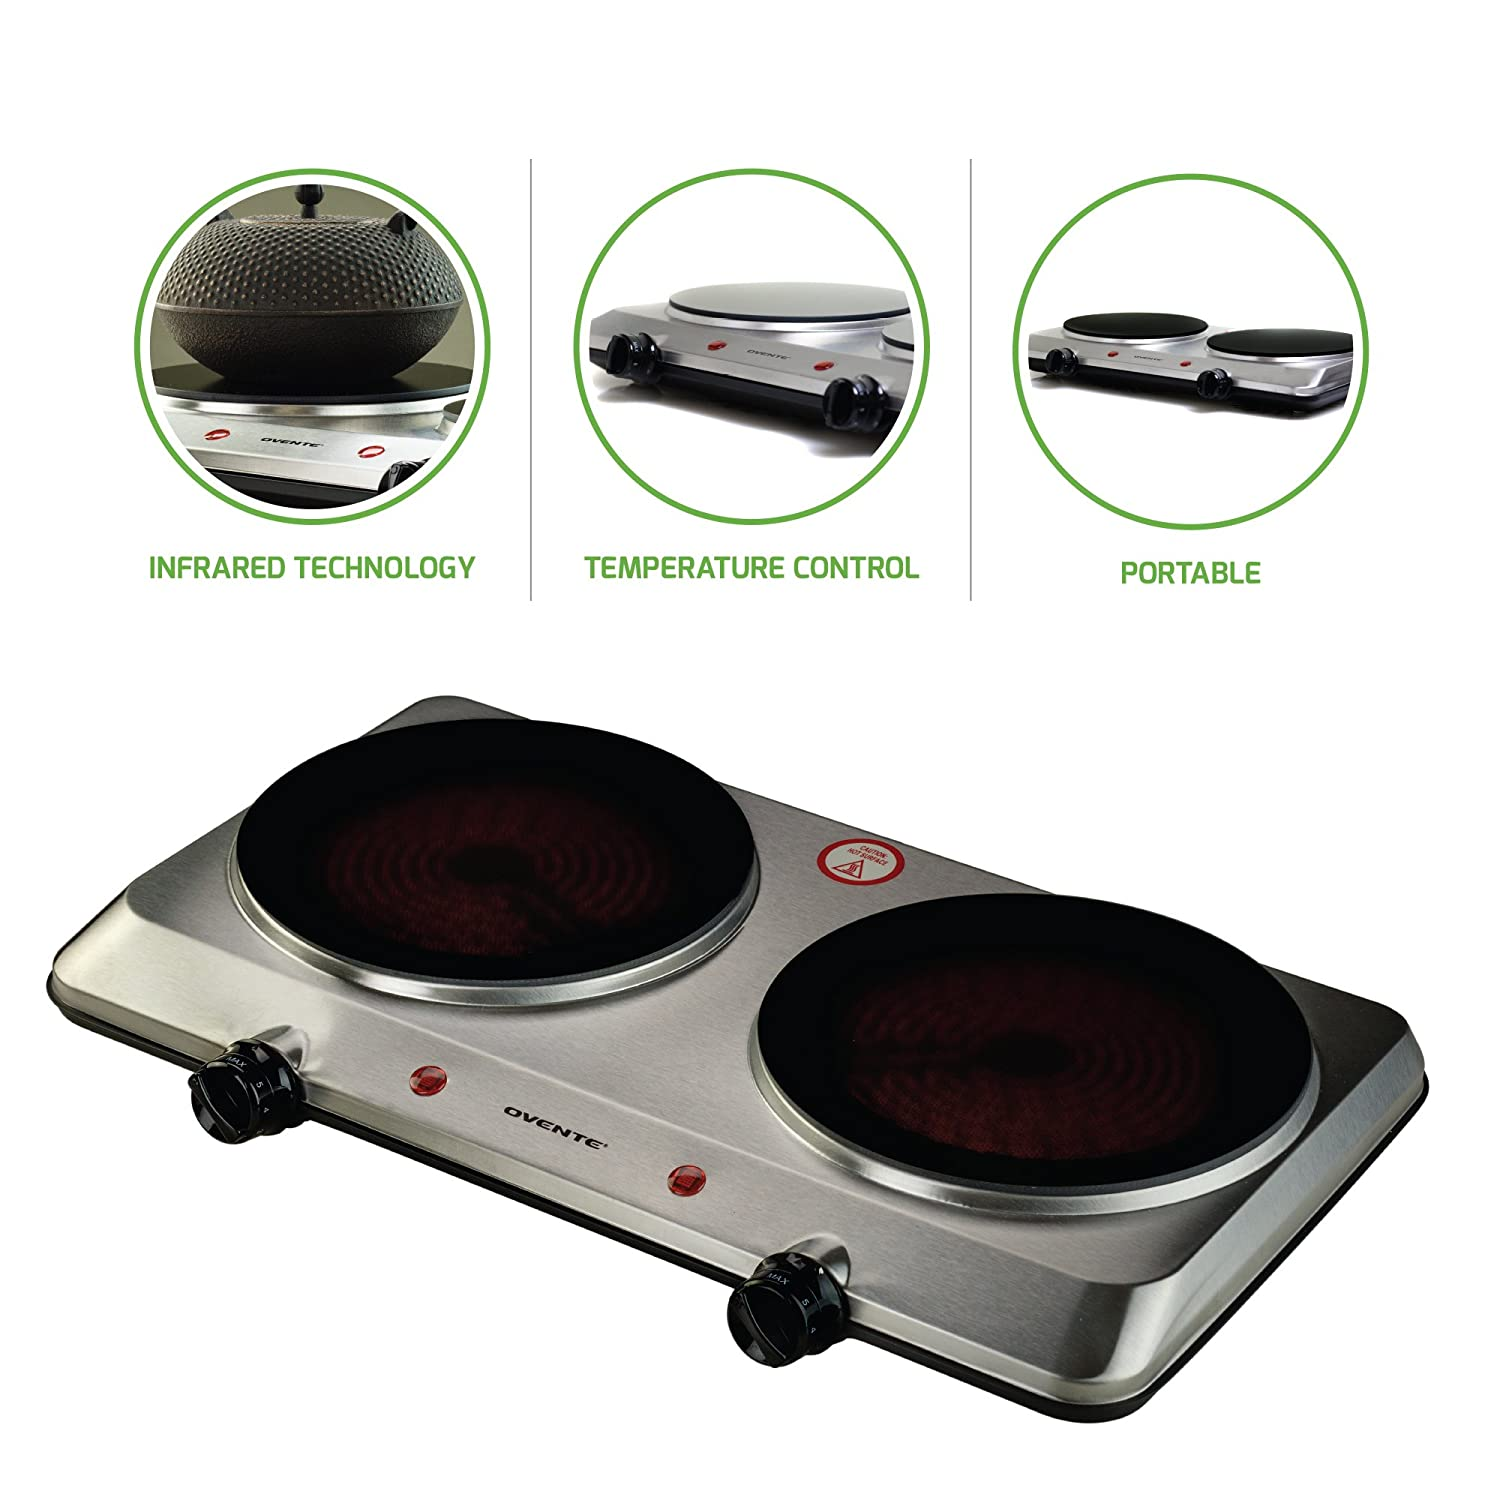 """Ovente Countertop Infrared Burner – 1000 Watts – 7.5"""" Ceramic Glass Single Plate Cooktop with Temperature Control, Non-Slip Feet – Indoor/Outdoor Portable Electric Stove – Stainless Steel (Two Plate)"""